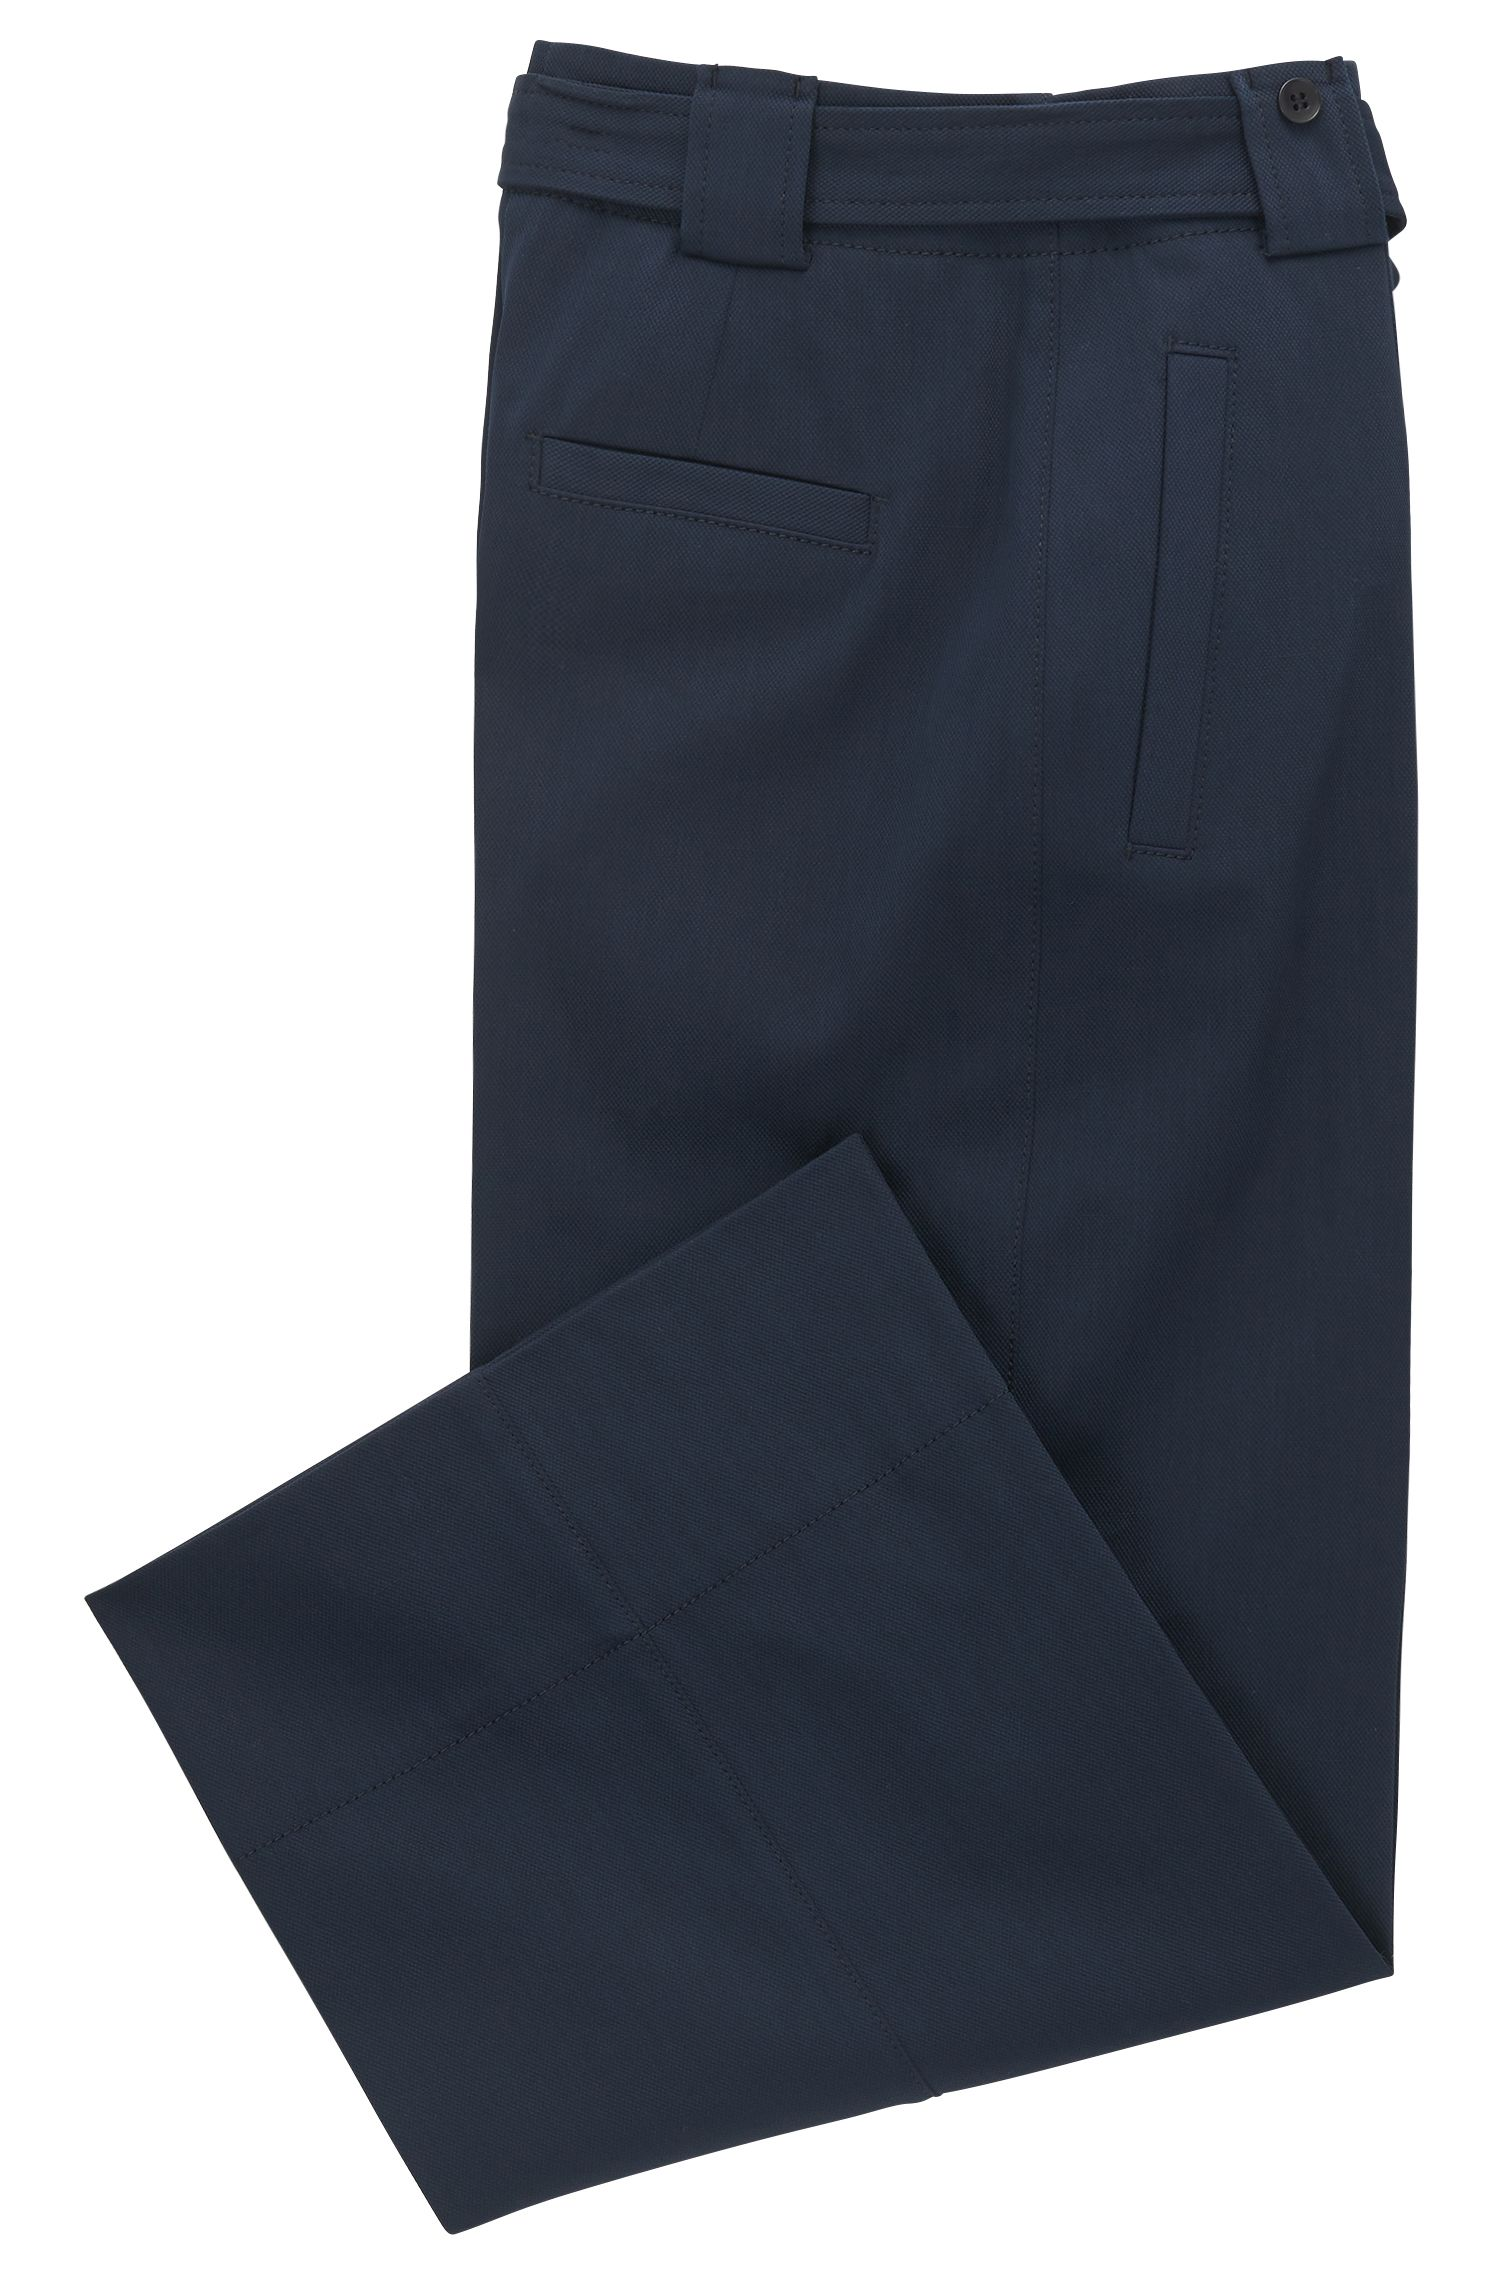 Pantaloni regular fit a gamba larga in cotone elasticizzato